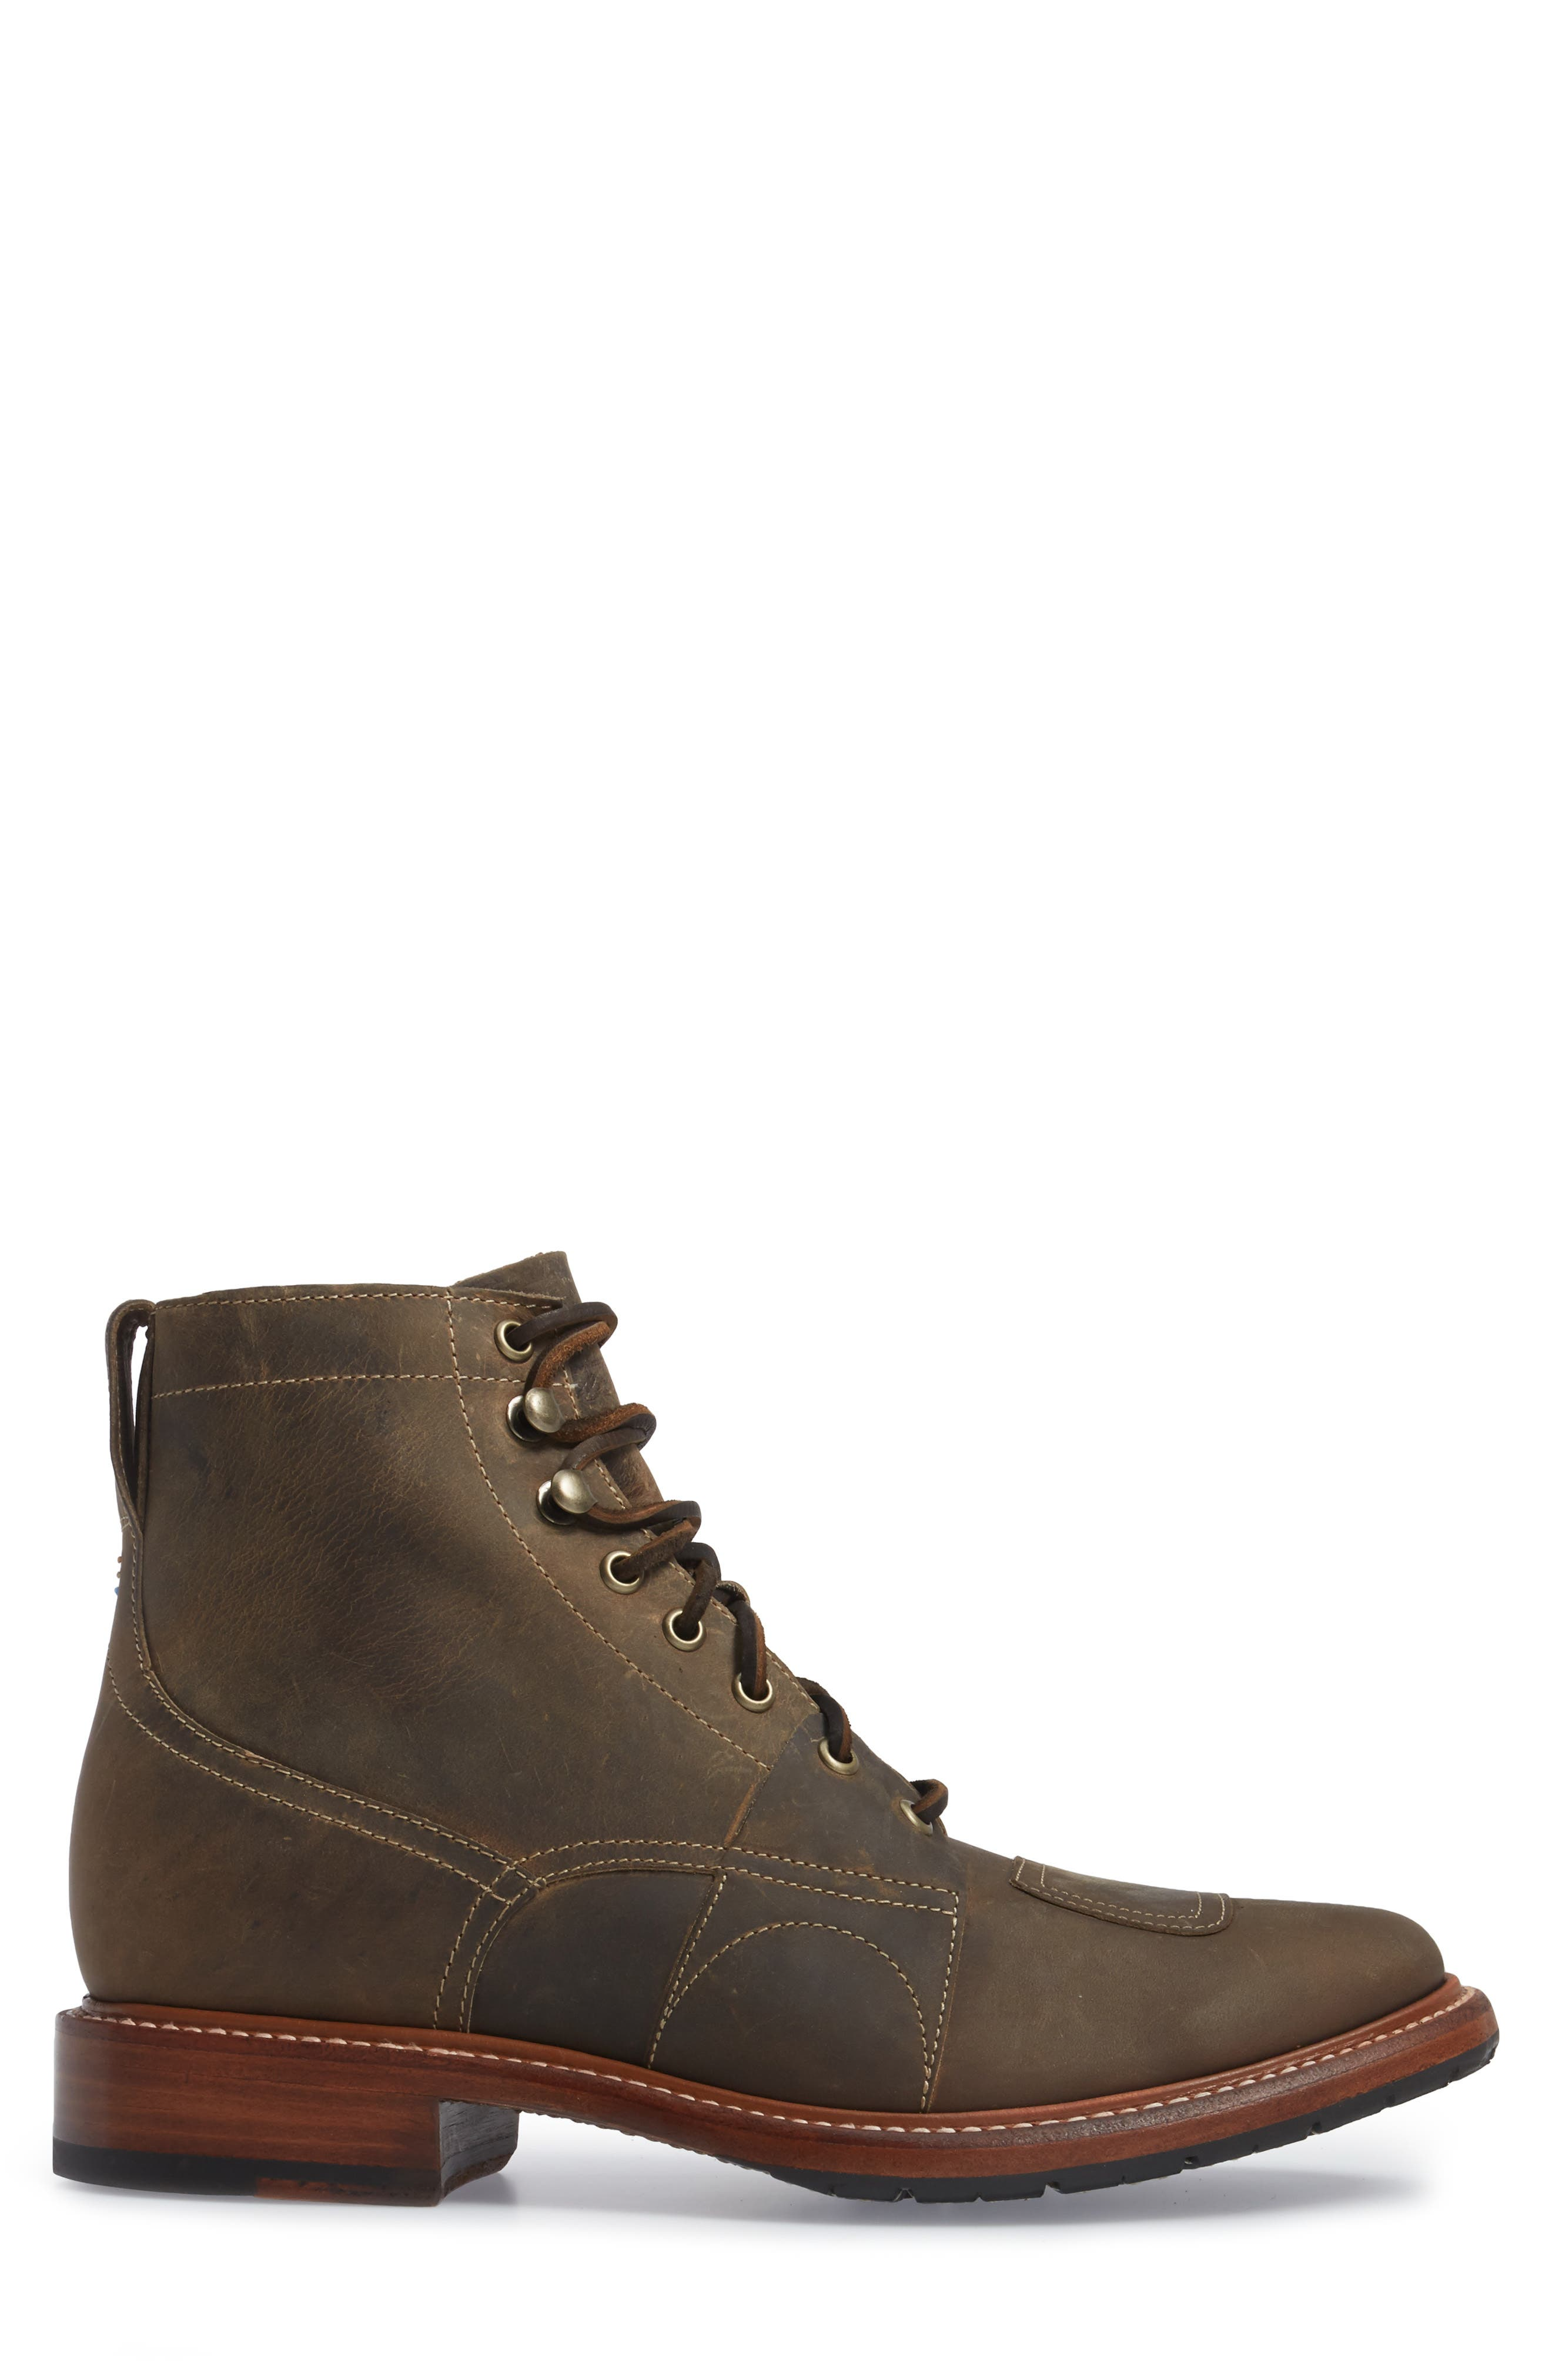 Cypress Plain Toe Boot,                             Alternate thumbnail 3, color,                             Brown Leather